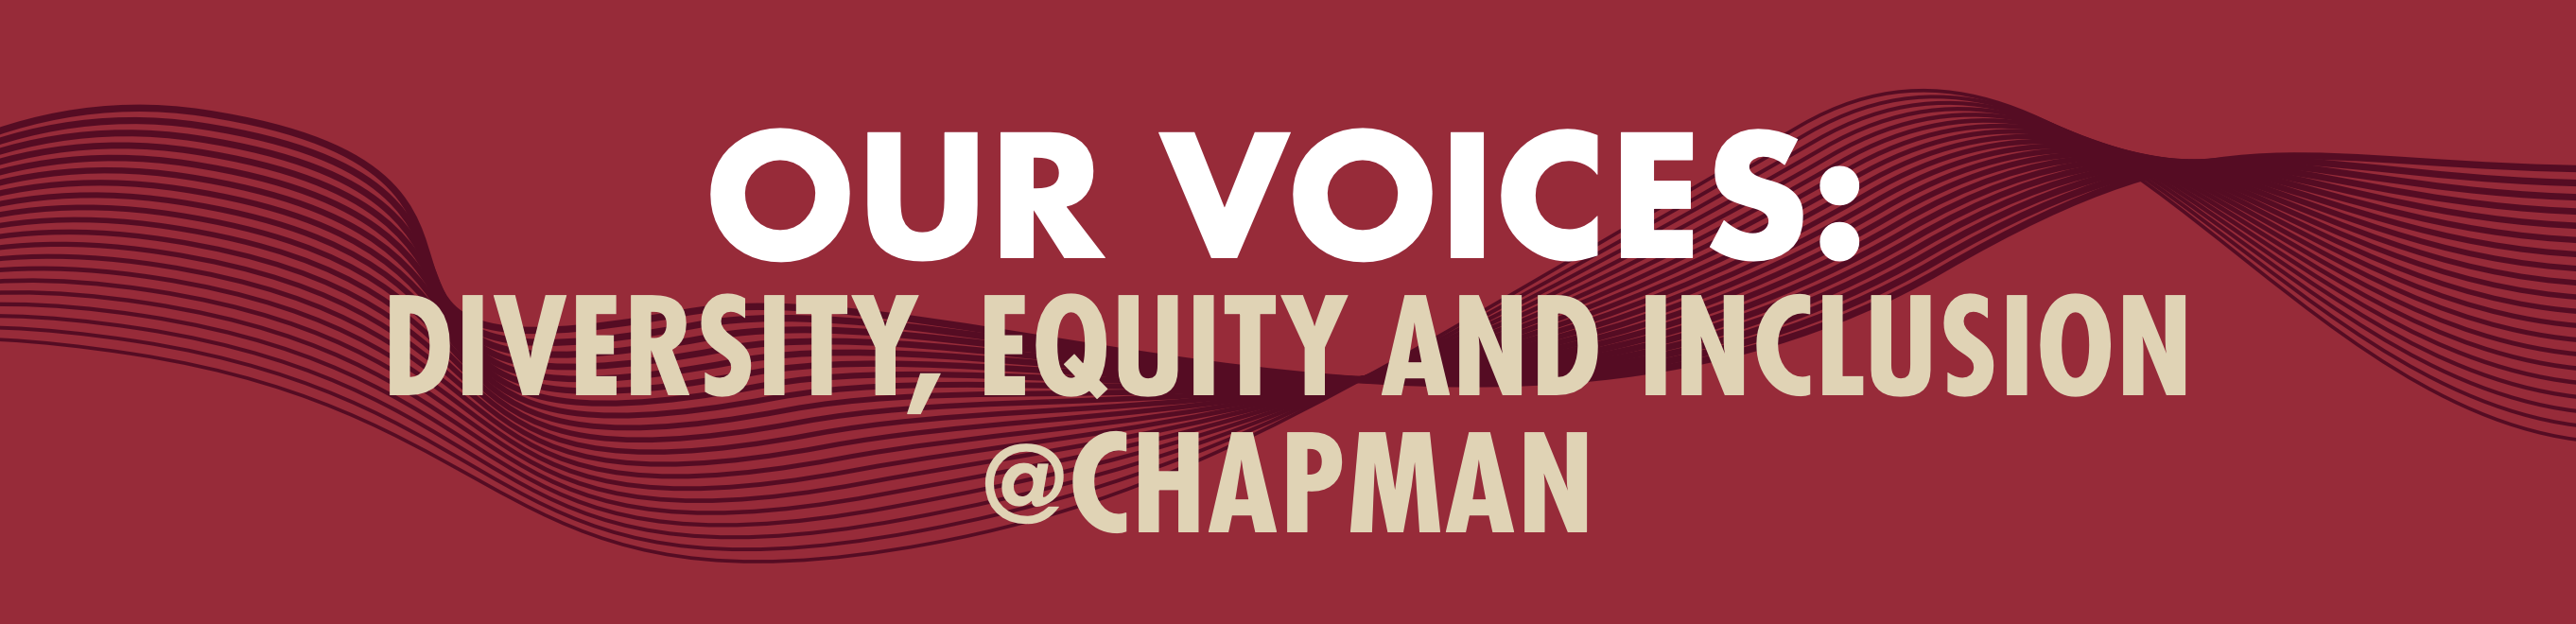 Our Voices: Diversity Equity and Inclusion @Chapman